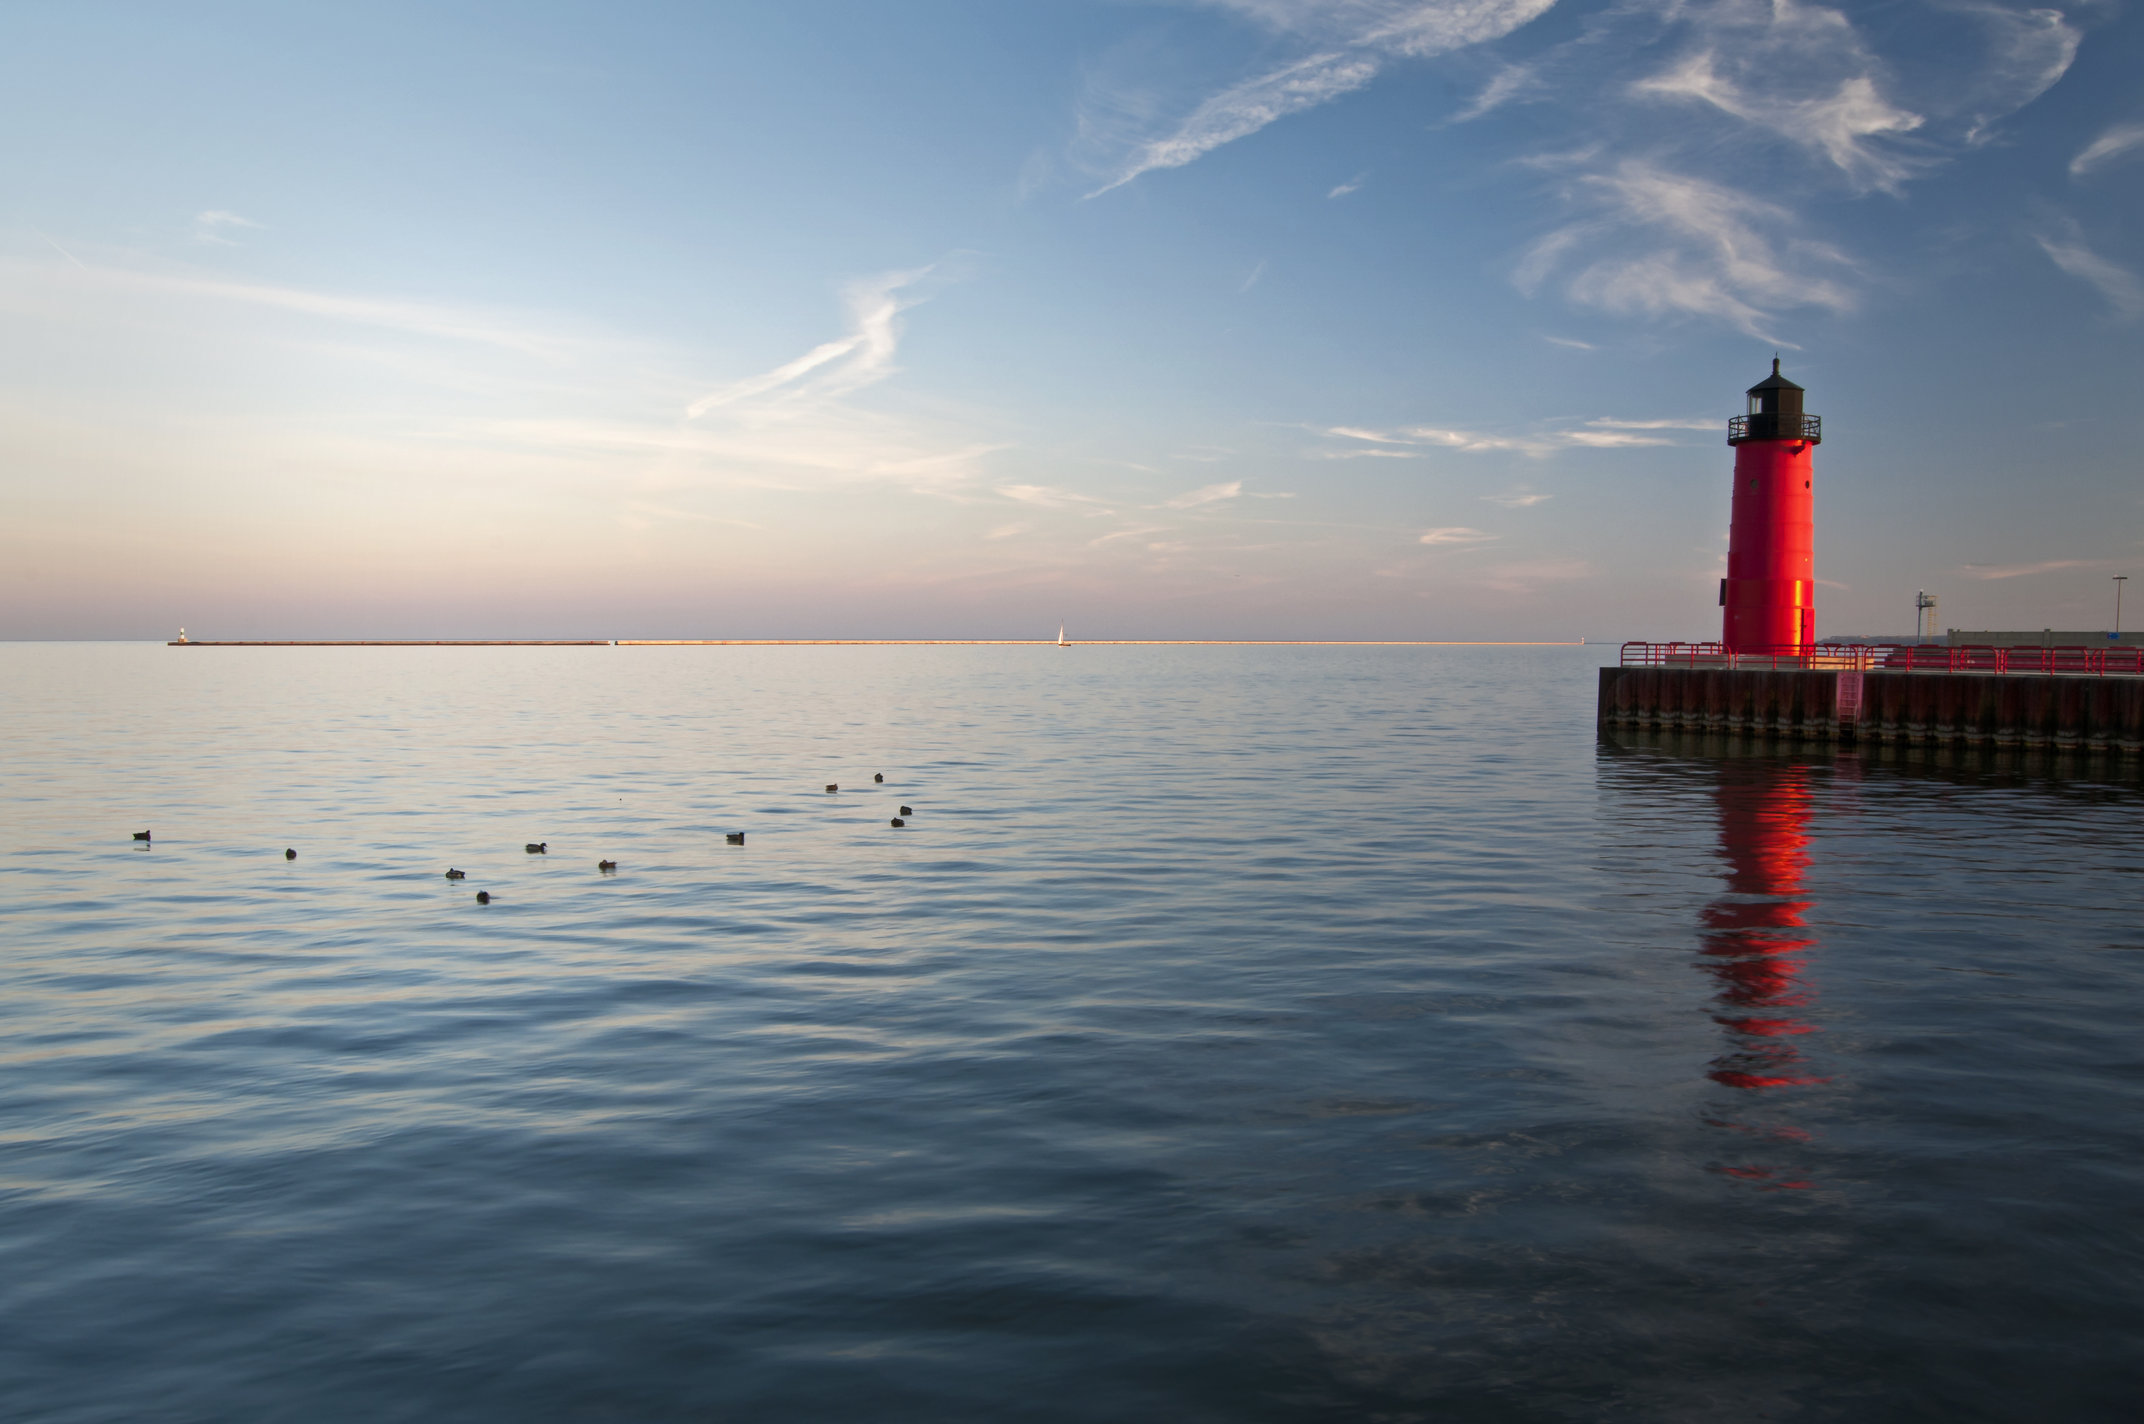 A view over Lake Michigan from the Shore with the lighthouse on the right side